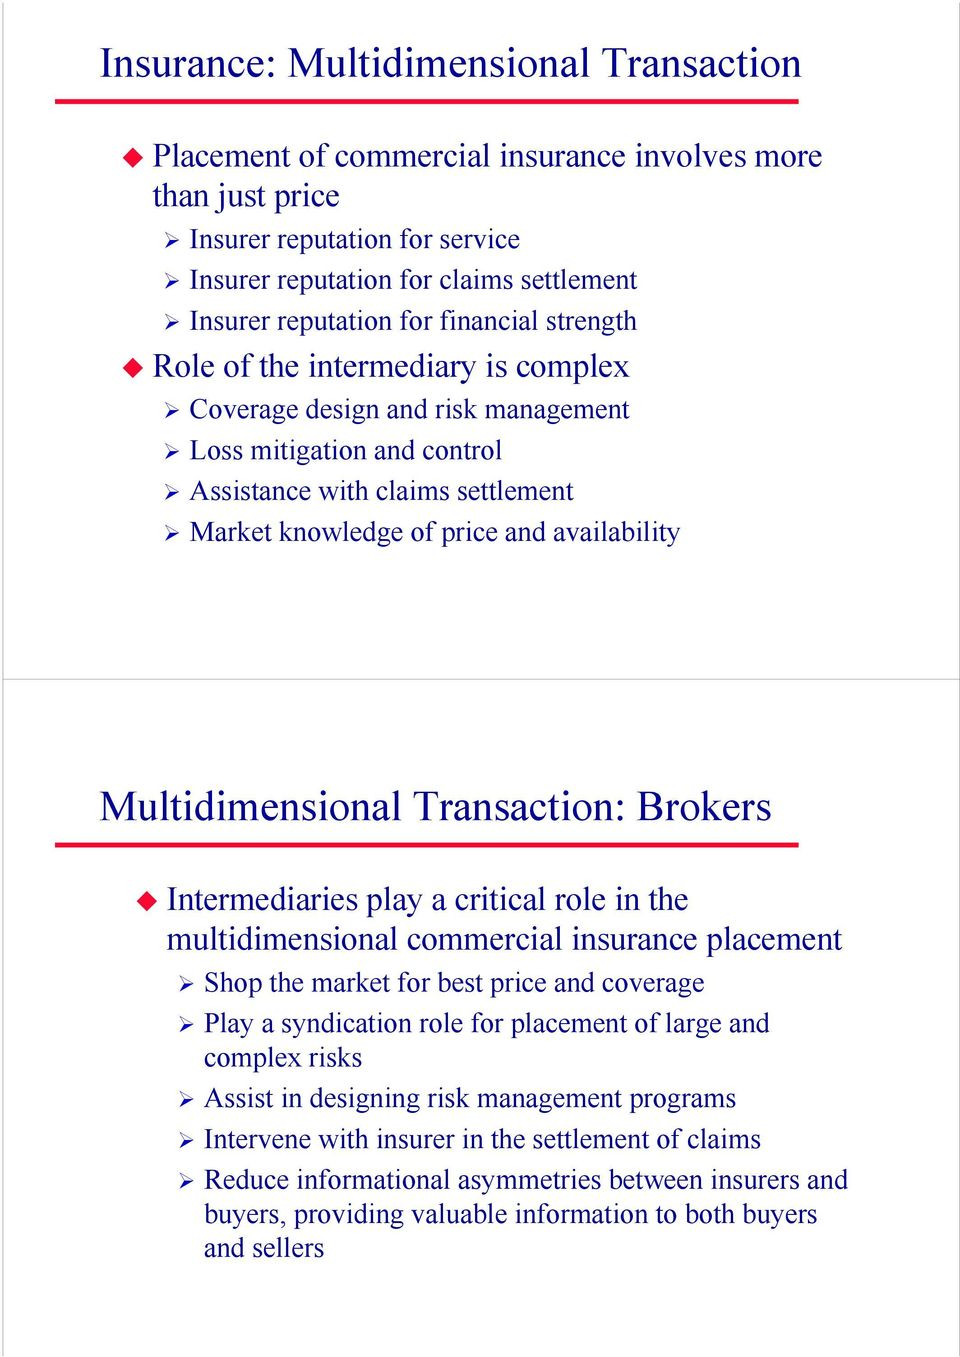 Multidimensional Transaction: Brokers Intermediaries play a critical role in the multidimensional commercial insurance placement Shop the market for best price and coverage Play a syndication role